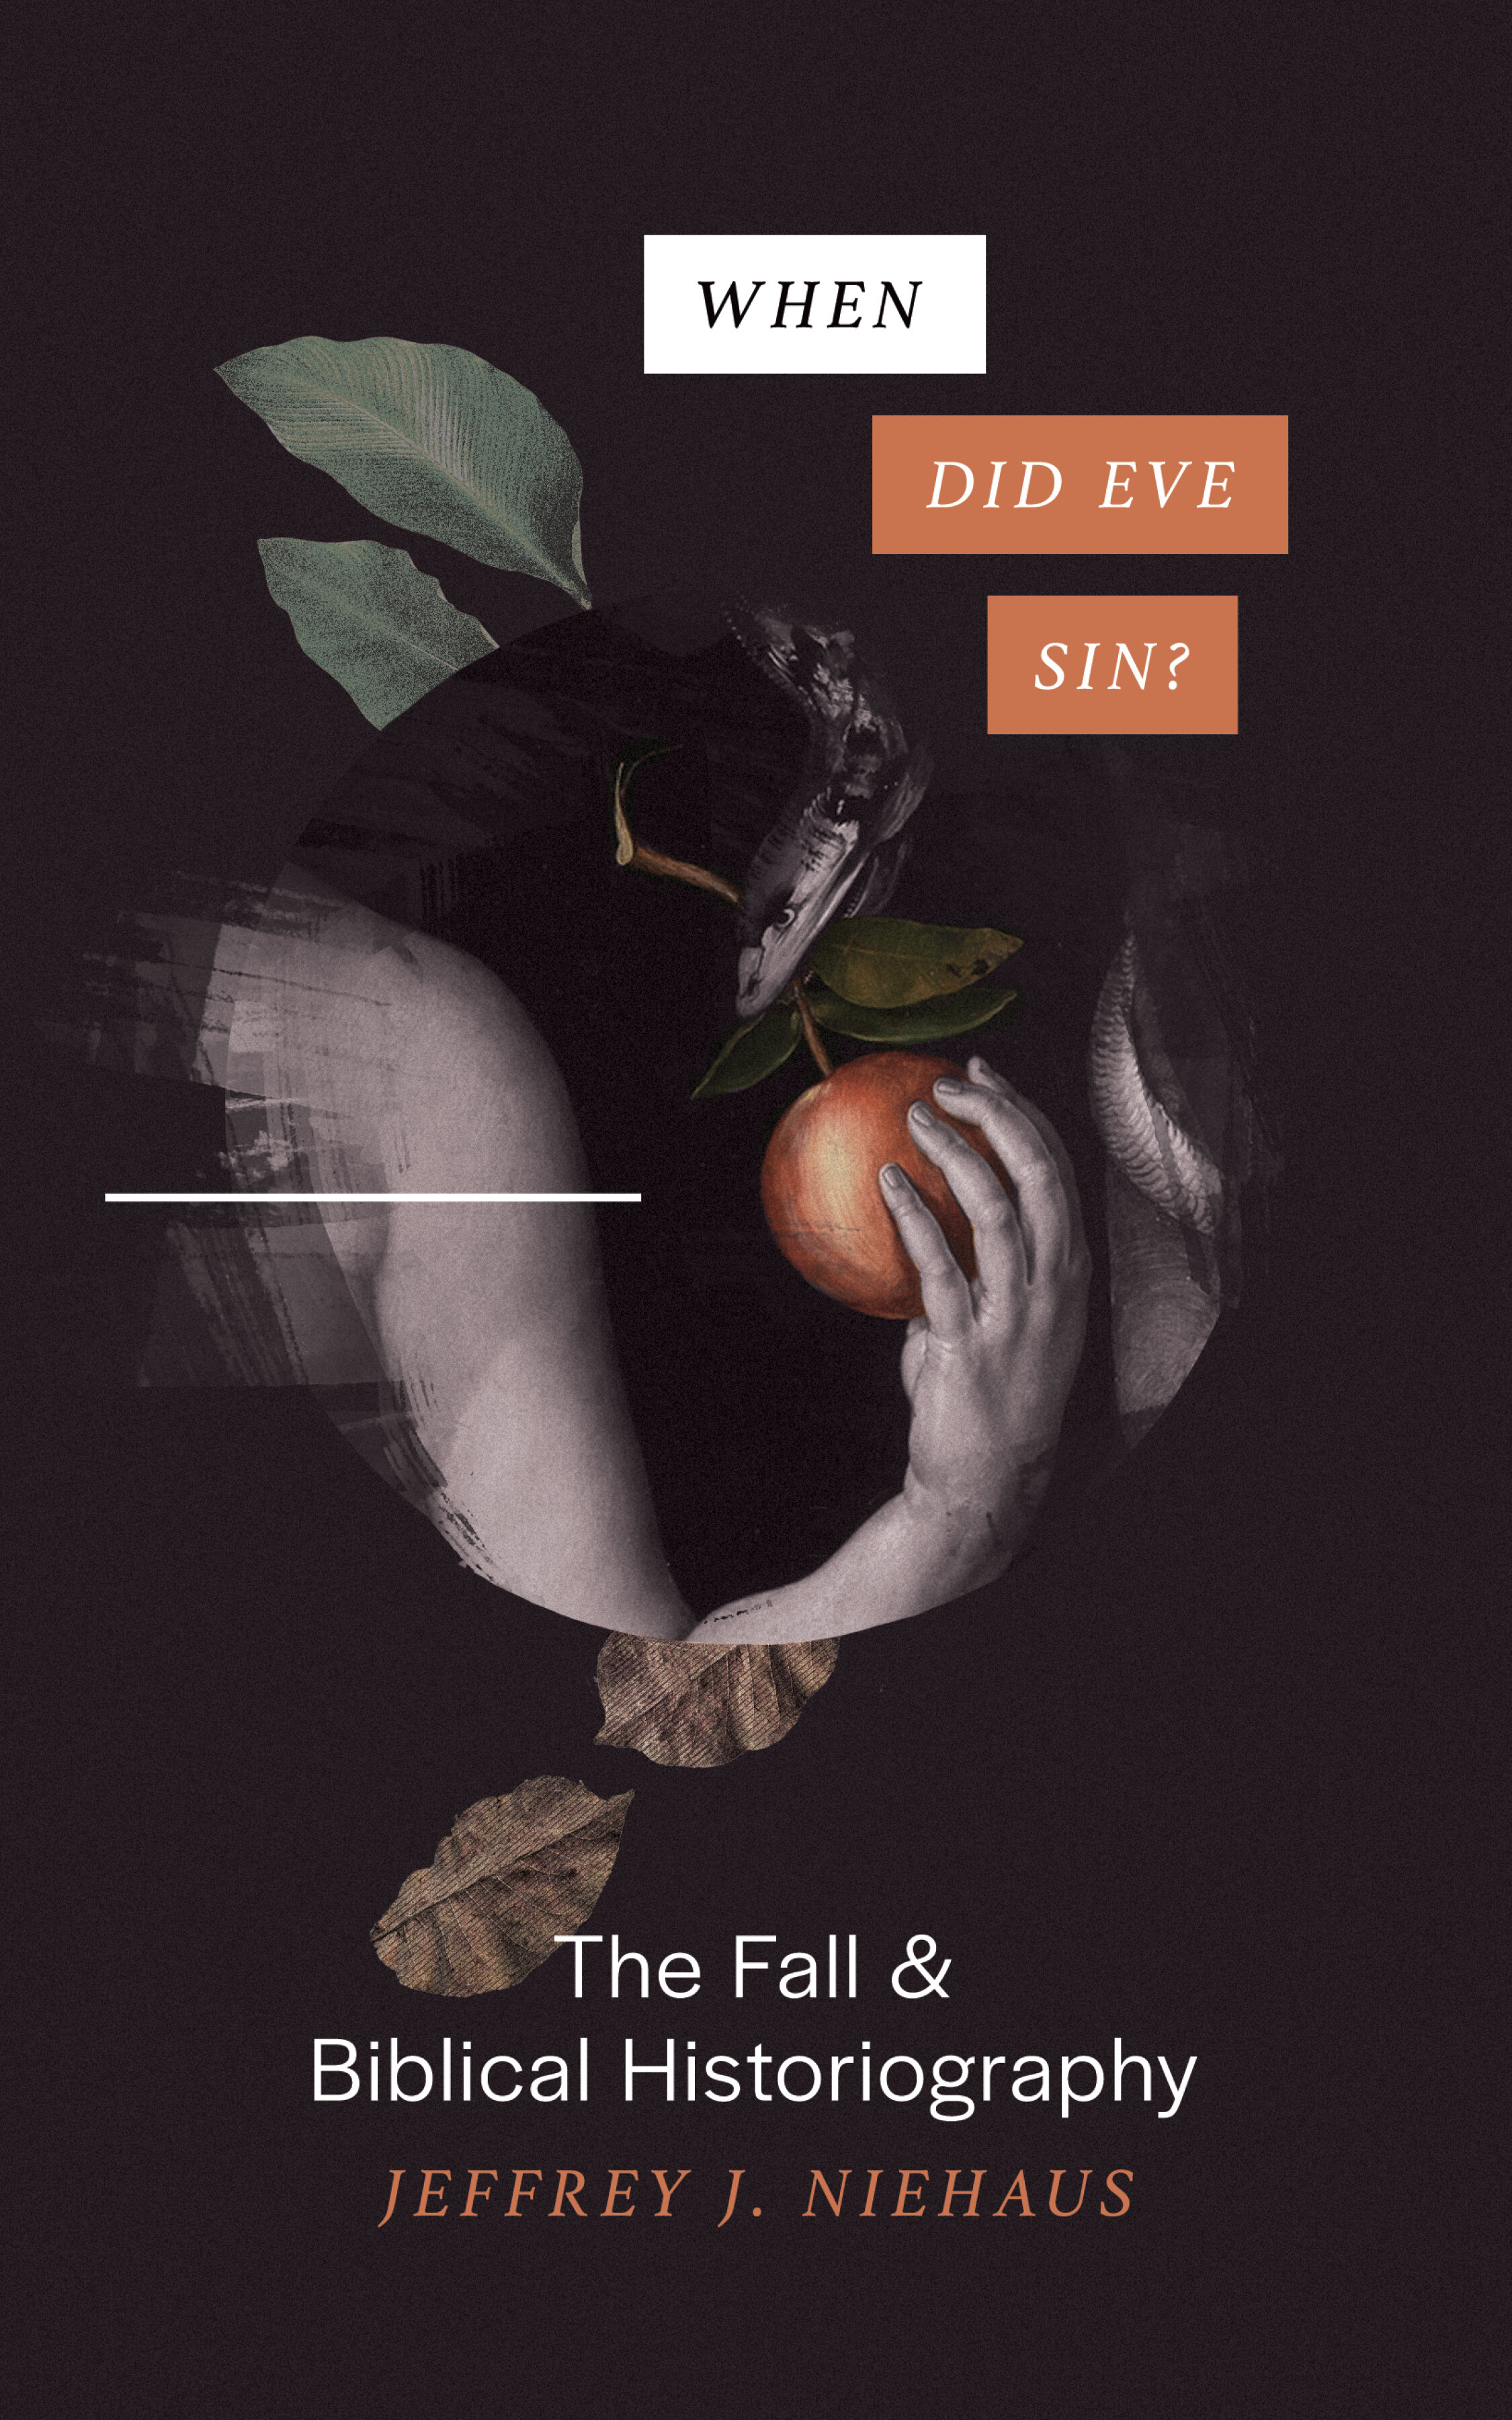 When Did Eve Sin?